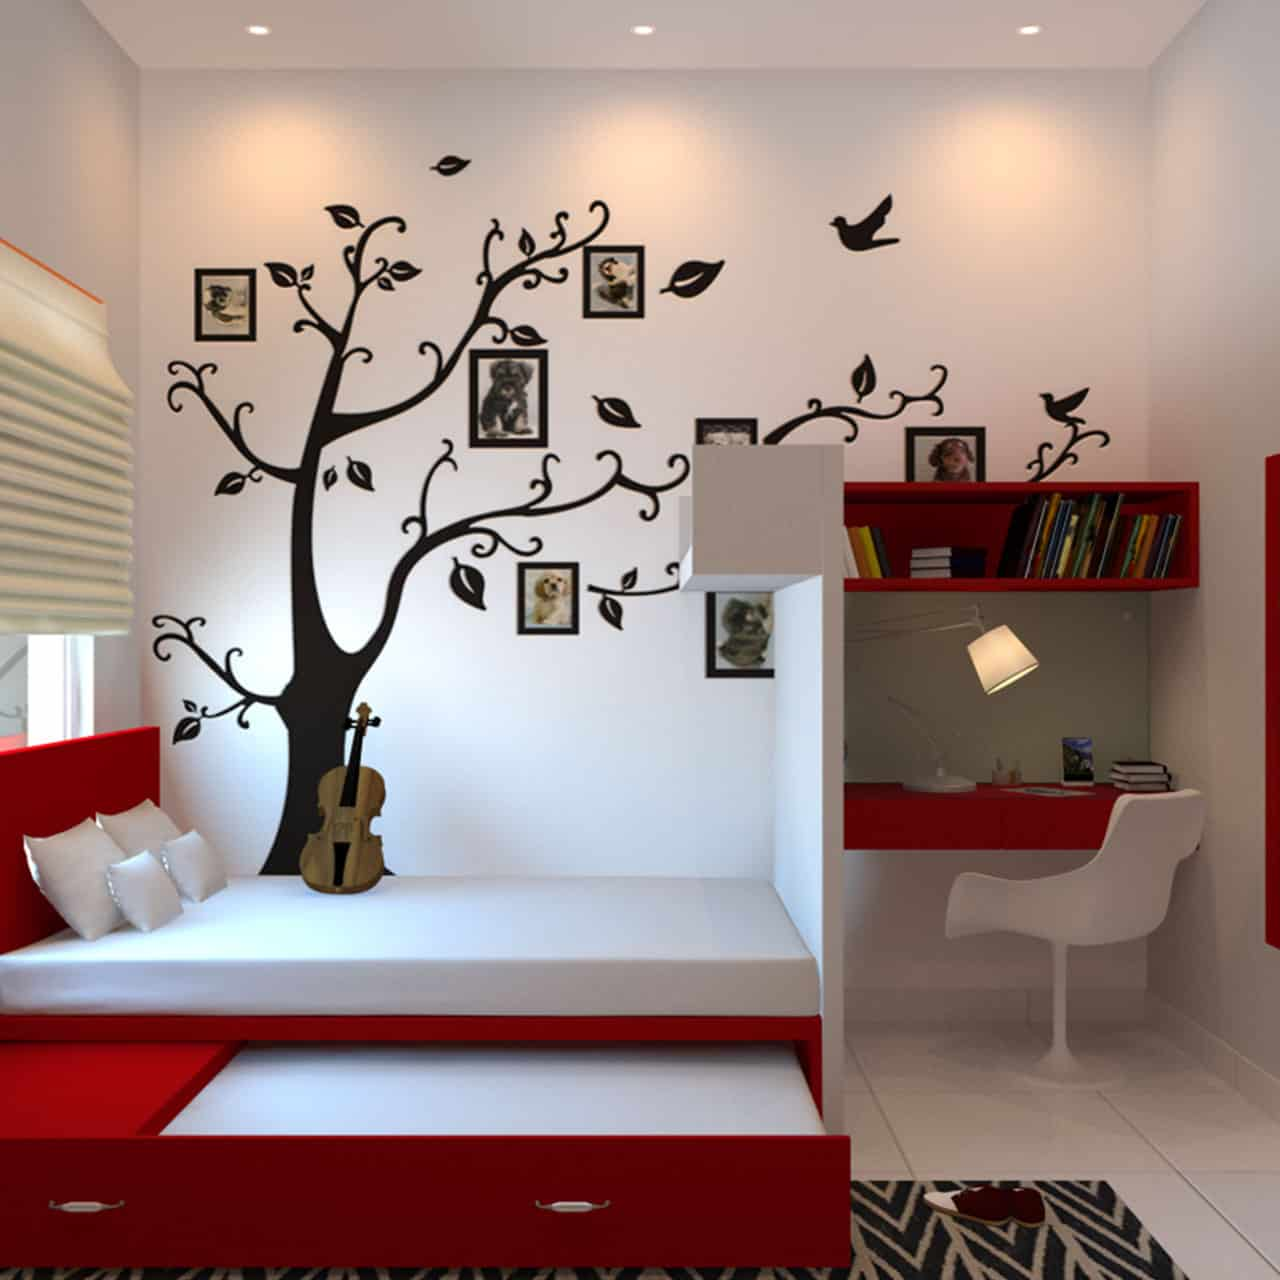 Infuse Learning into the Space for Kids Bedroom